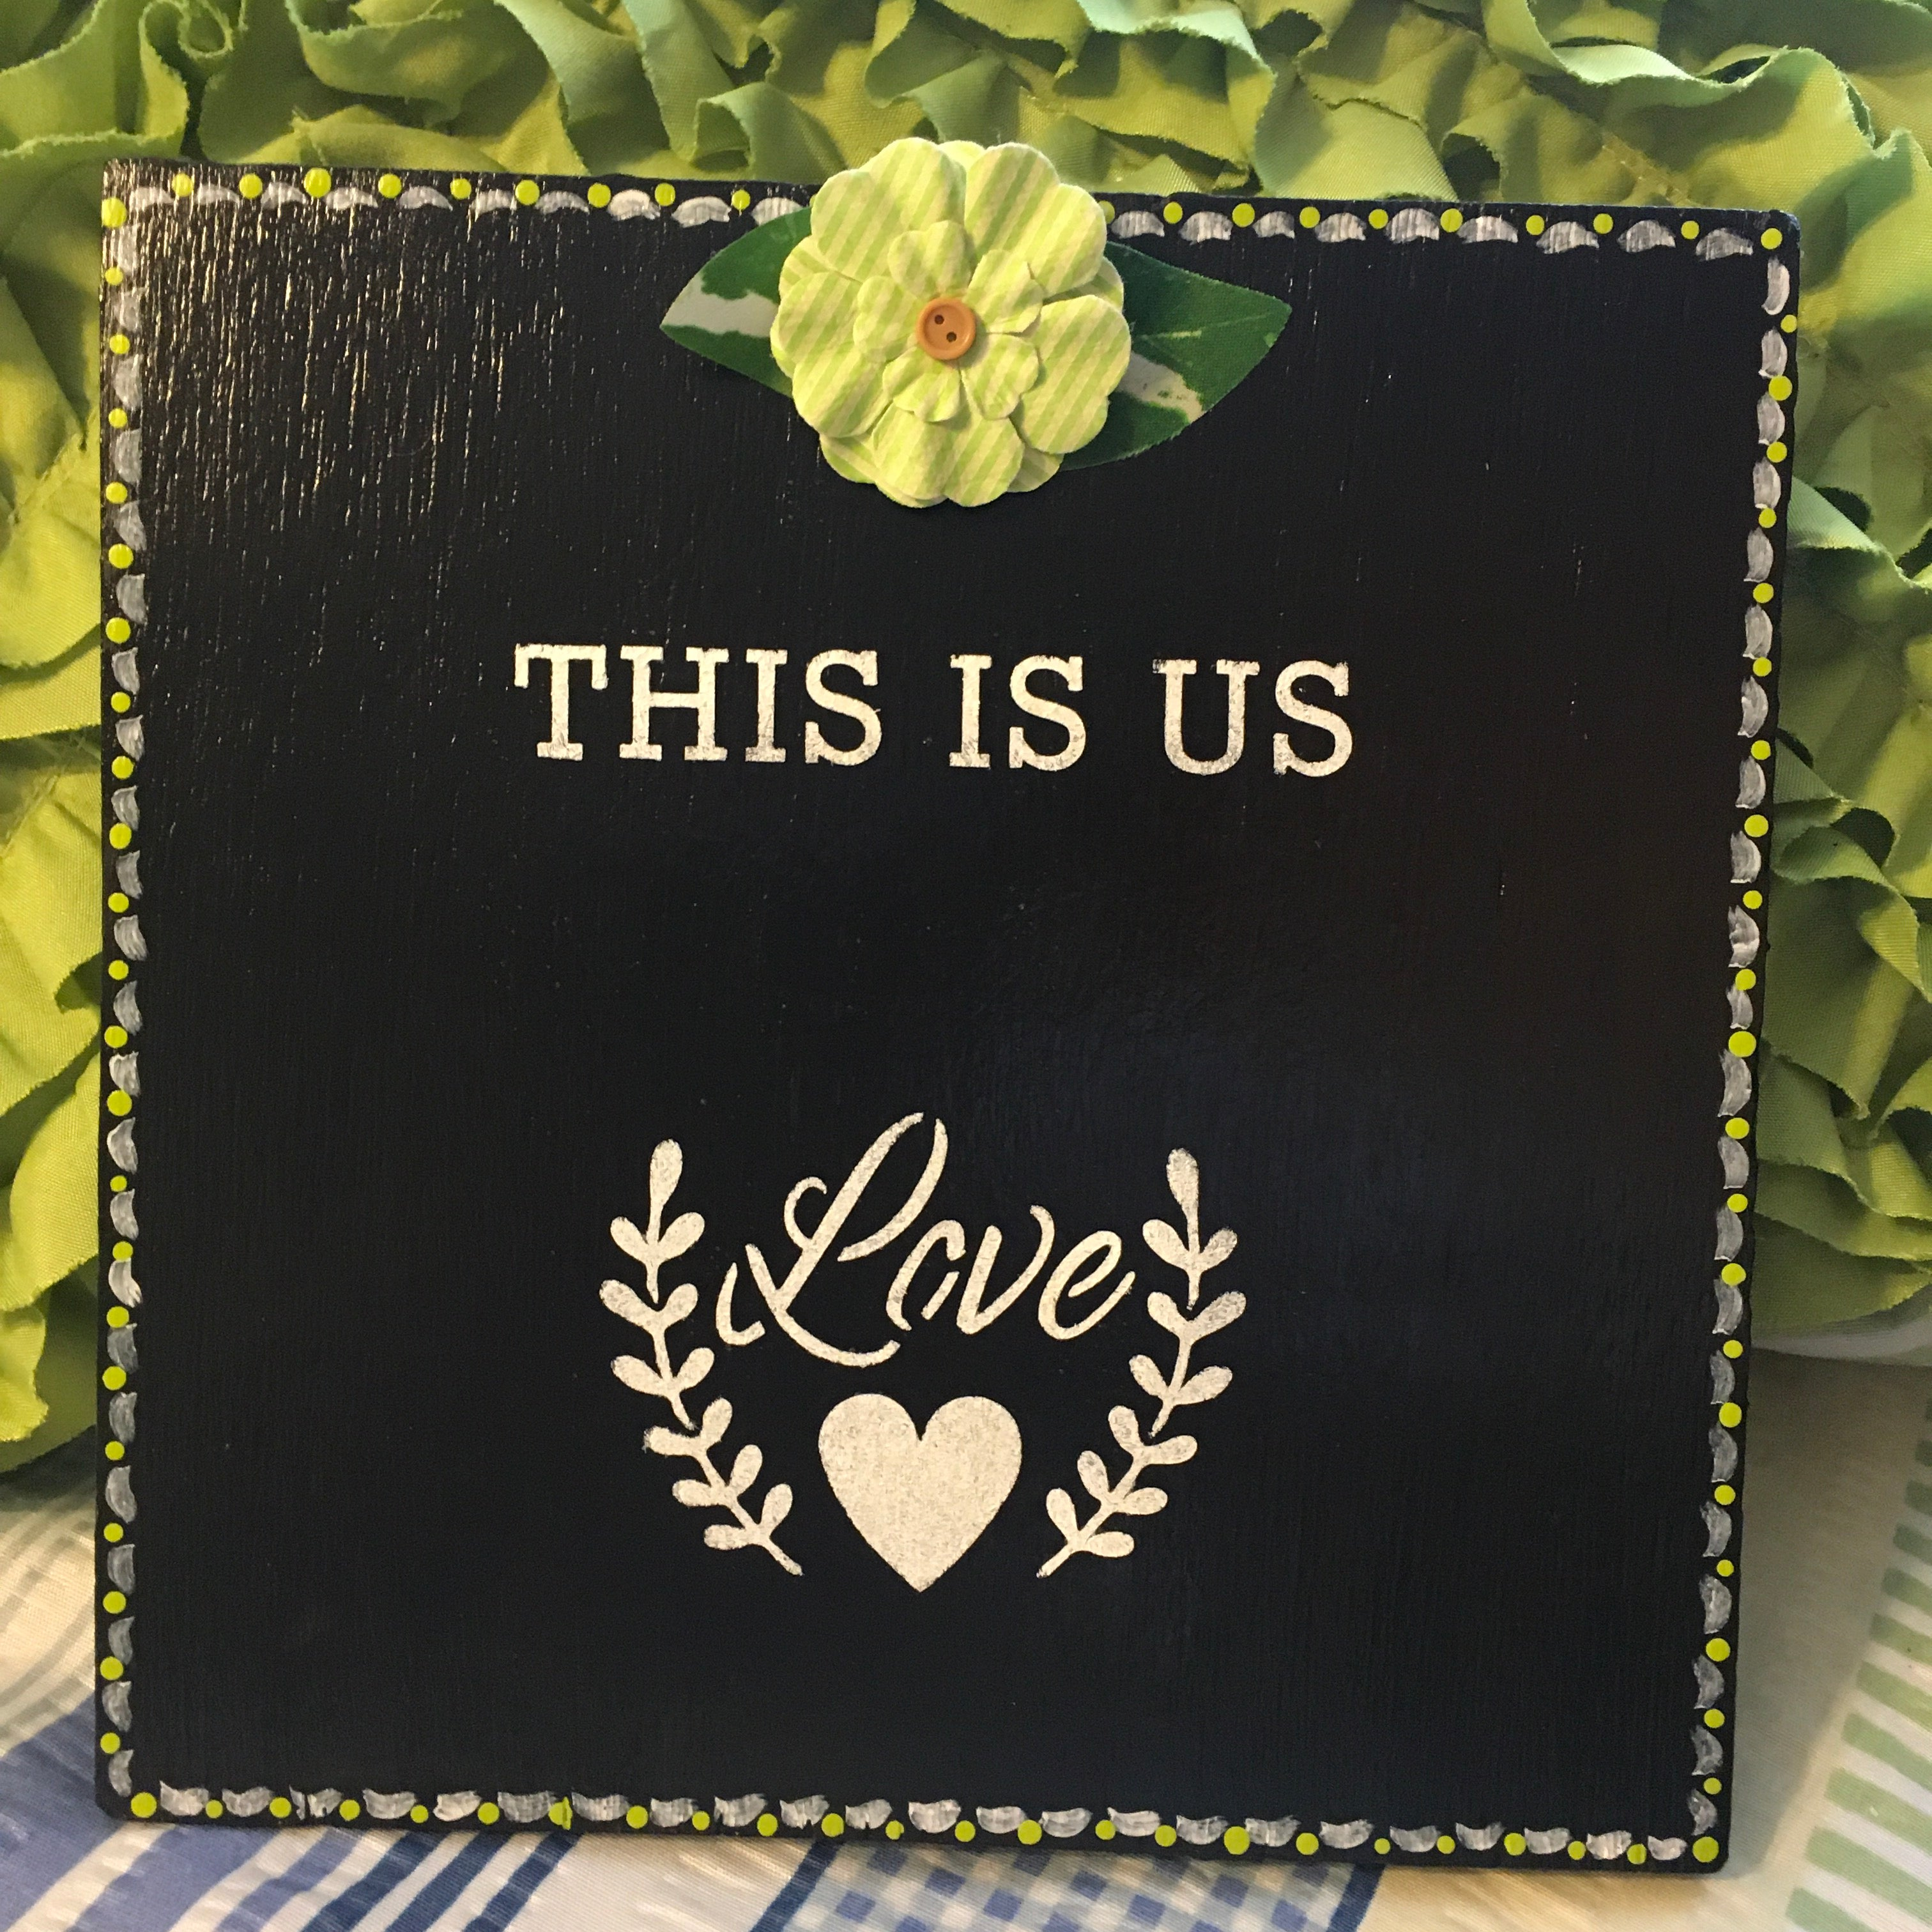 THIS IS US Square Hand Painted Green Wall Art Home Decor Gift Idea Positive  Saying